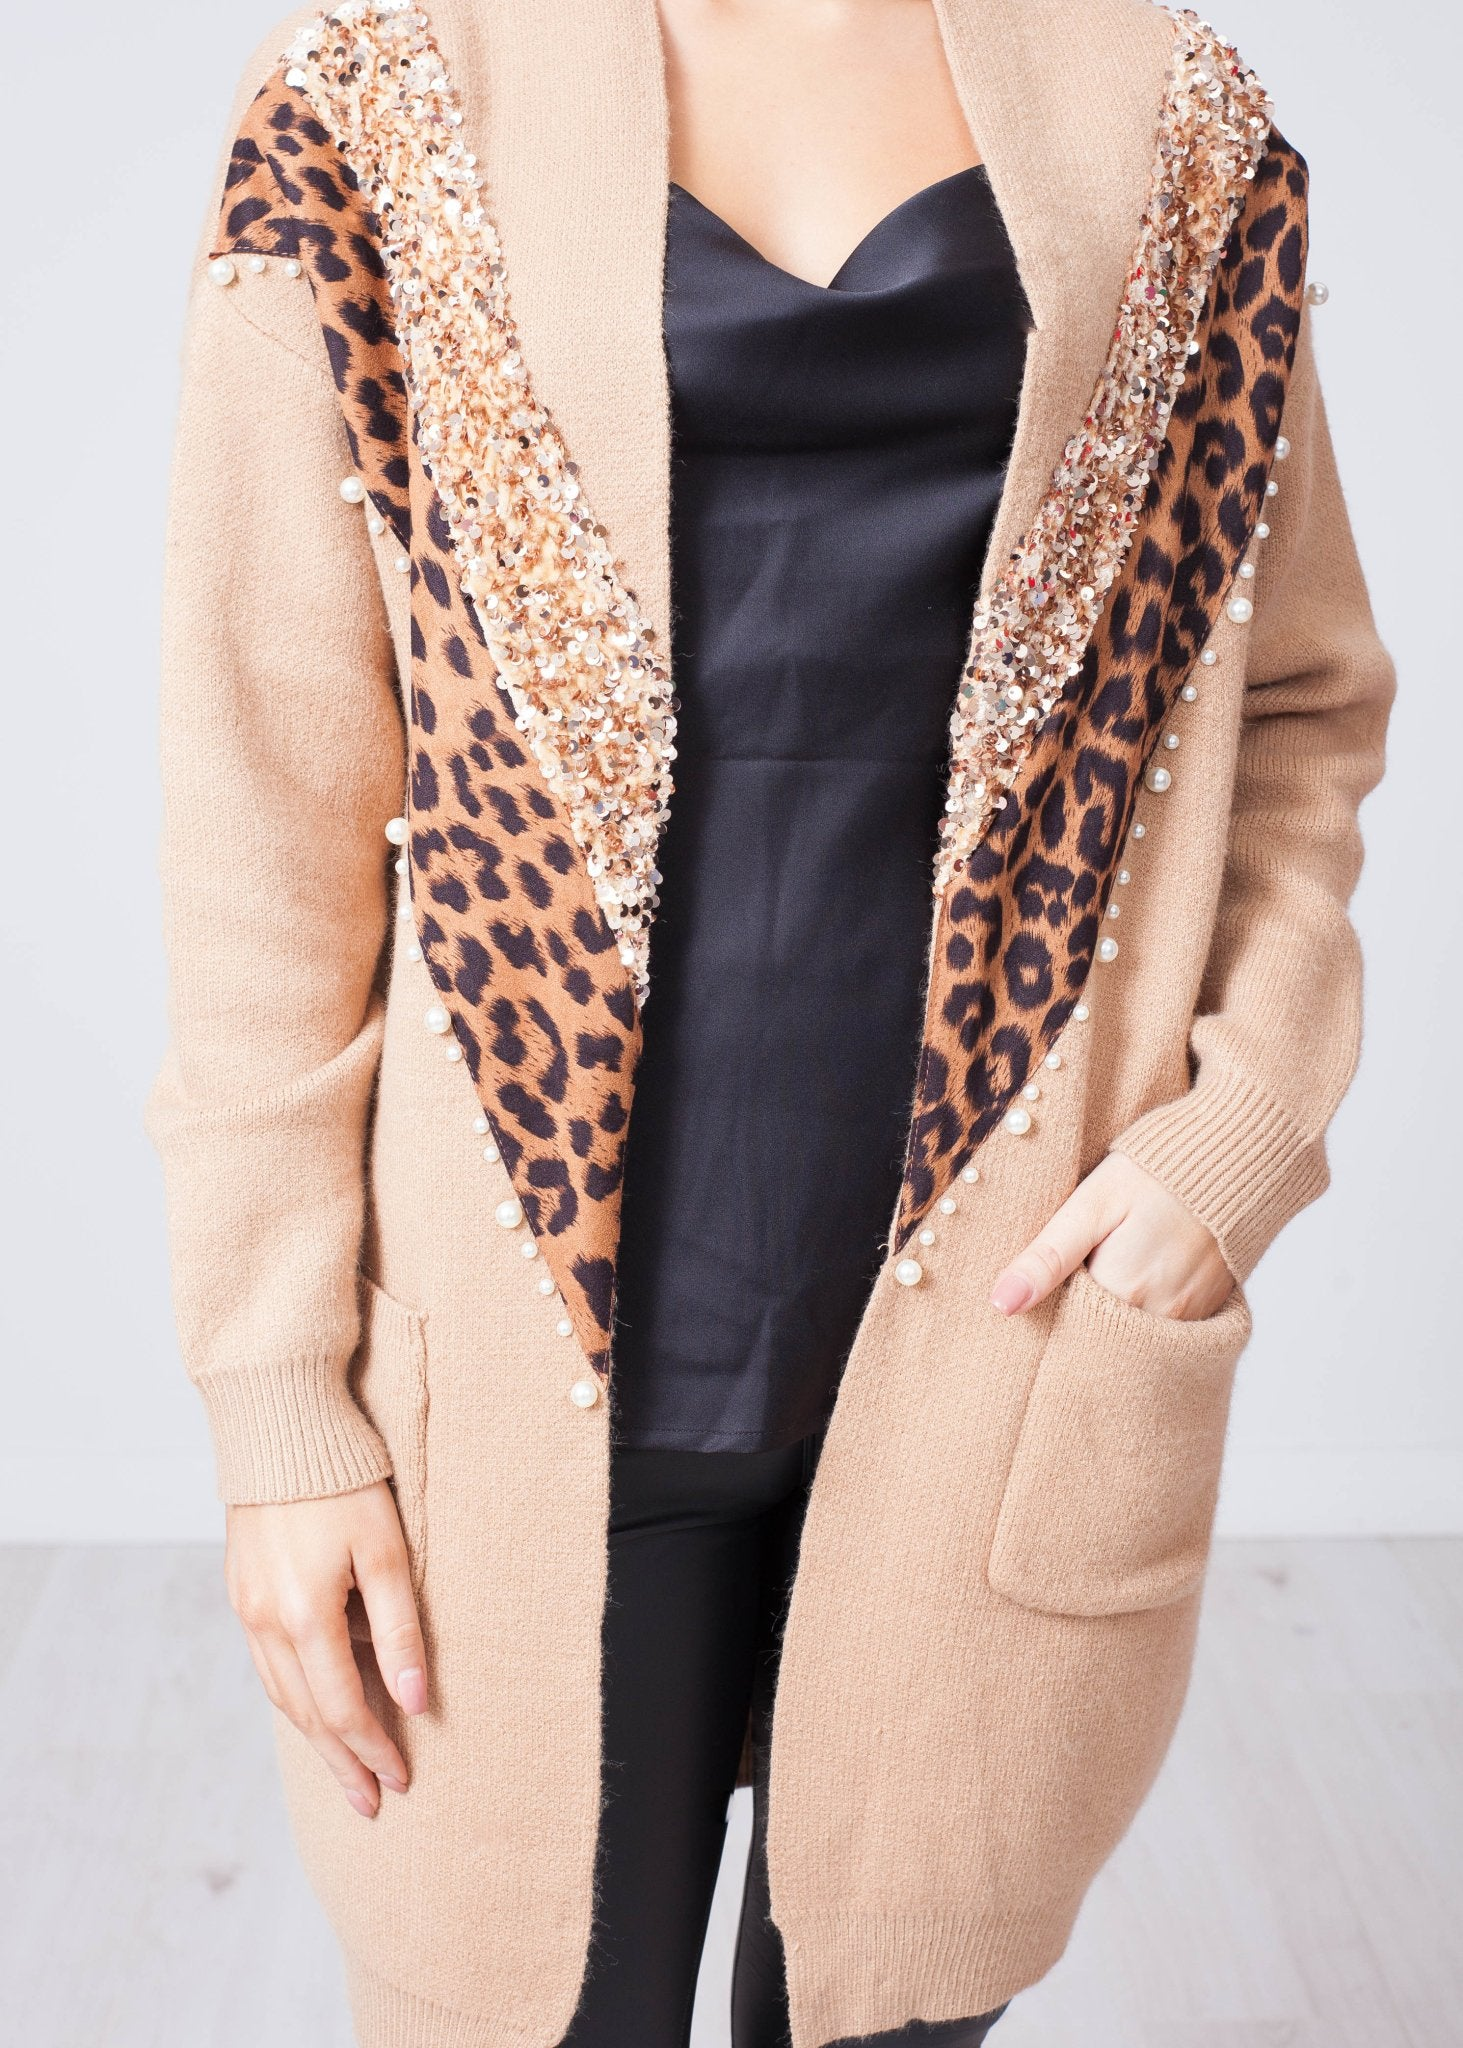 Priya Sequin And Pearl Cardigan In Tan - The Walk in Wardrobe